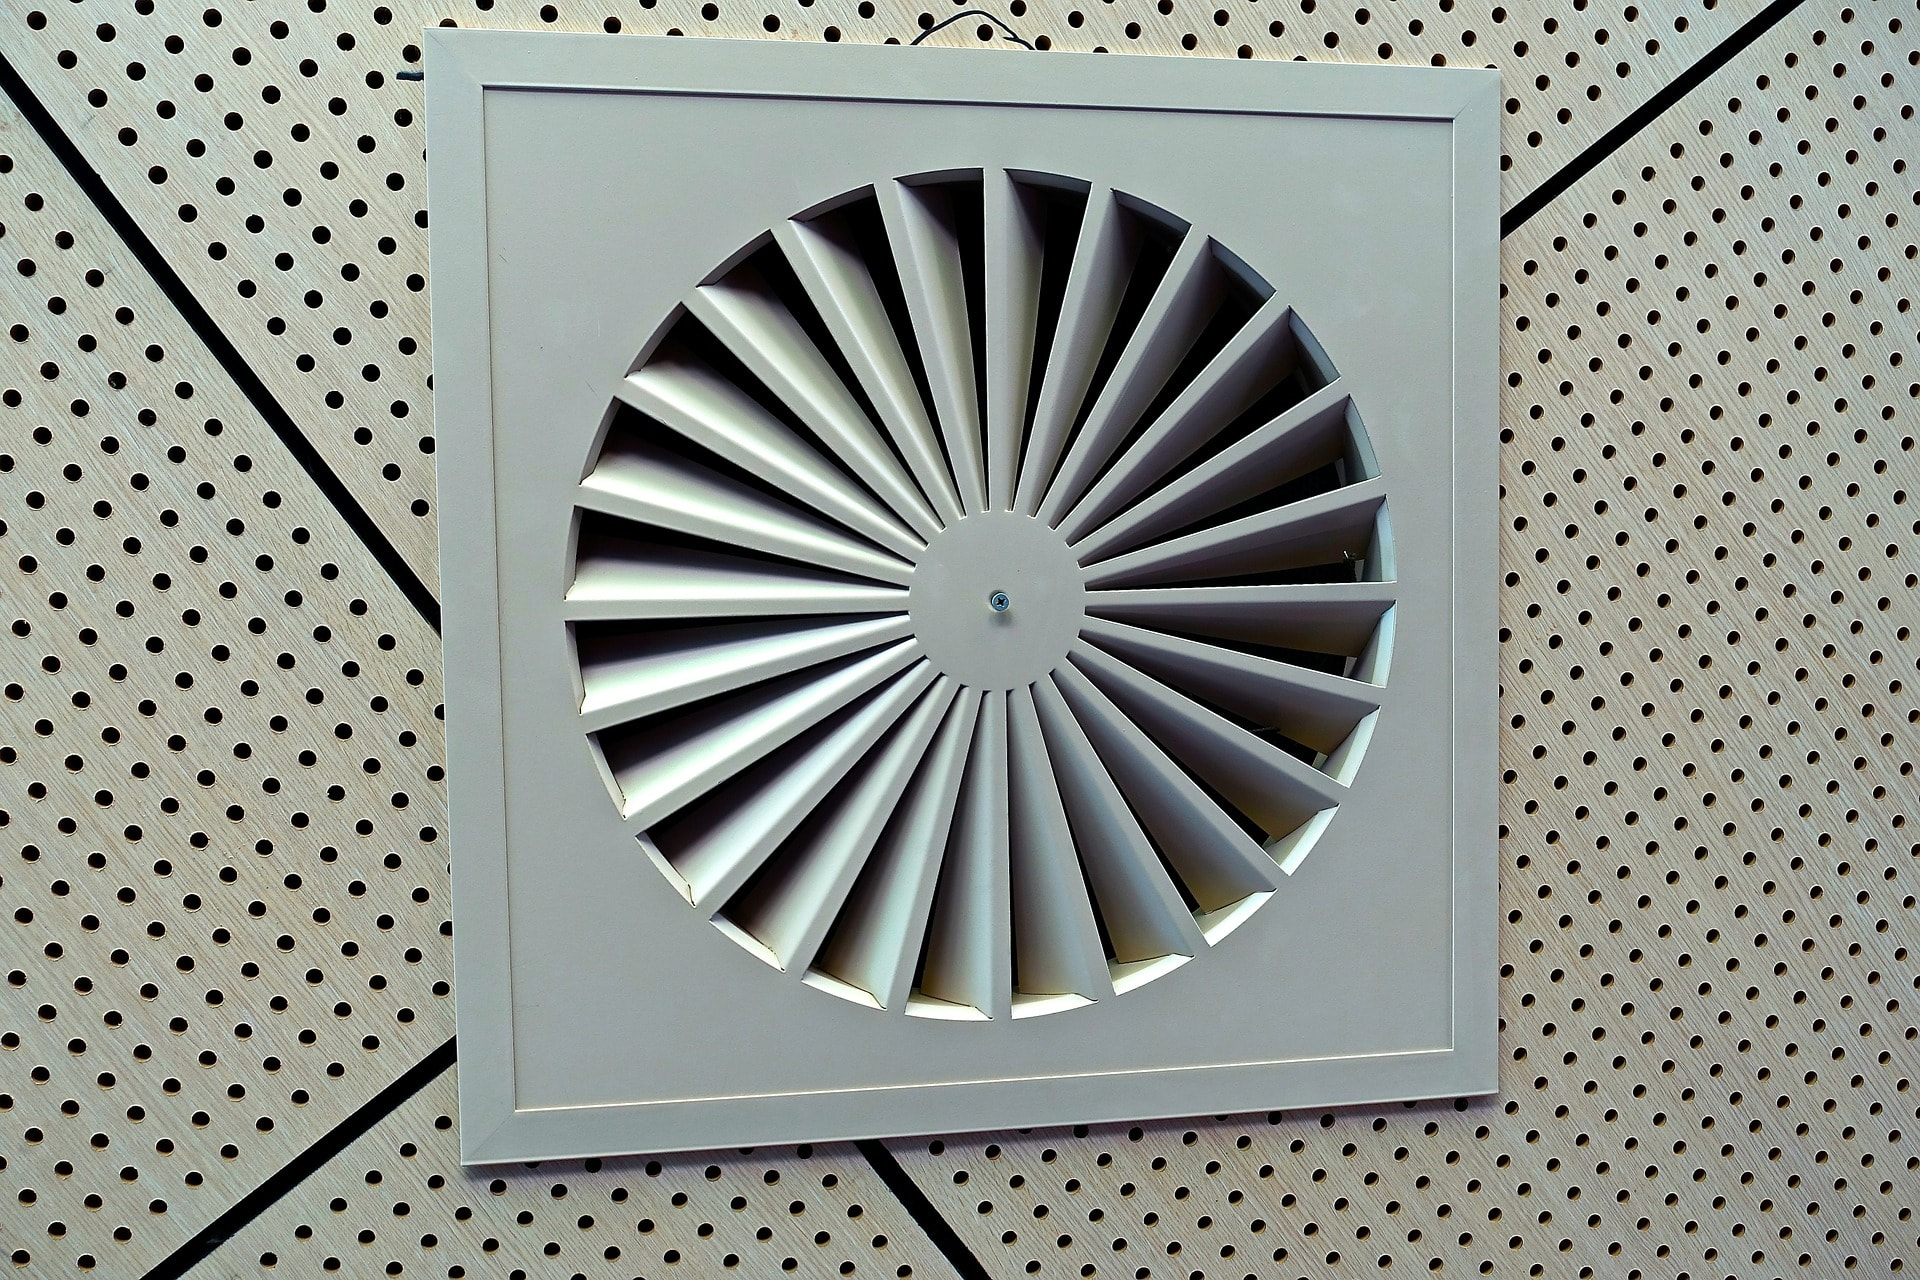 exhaust-fan-546946_1920-min